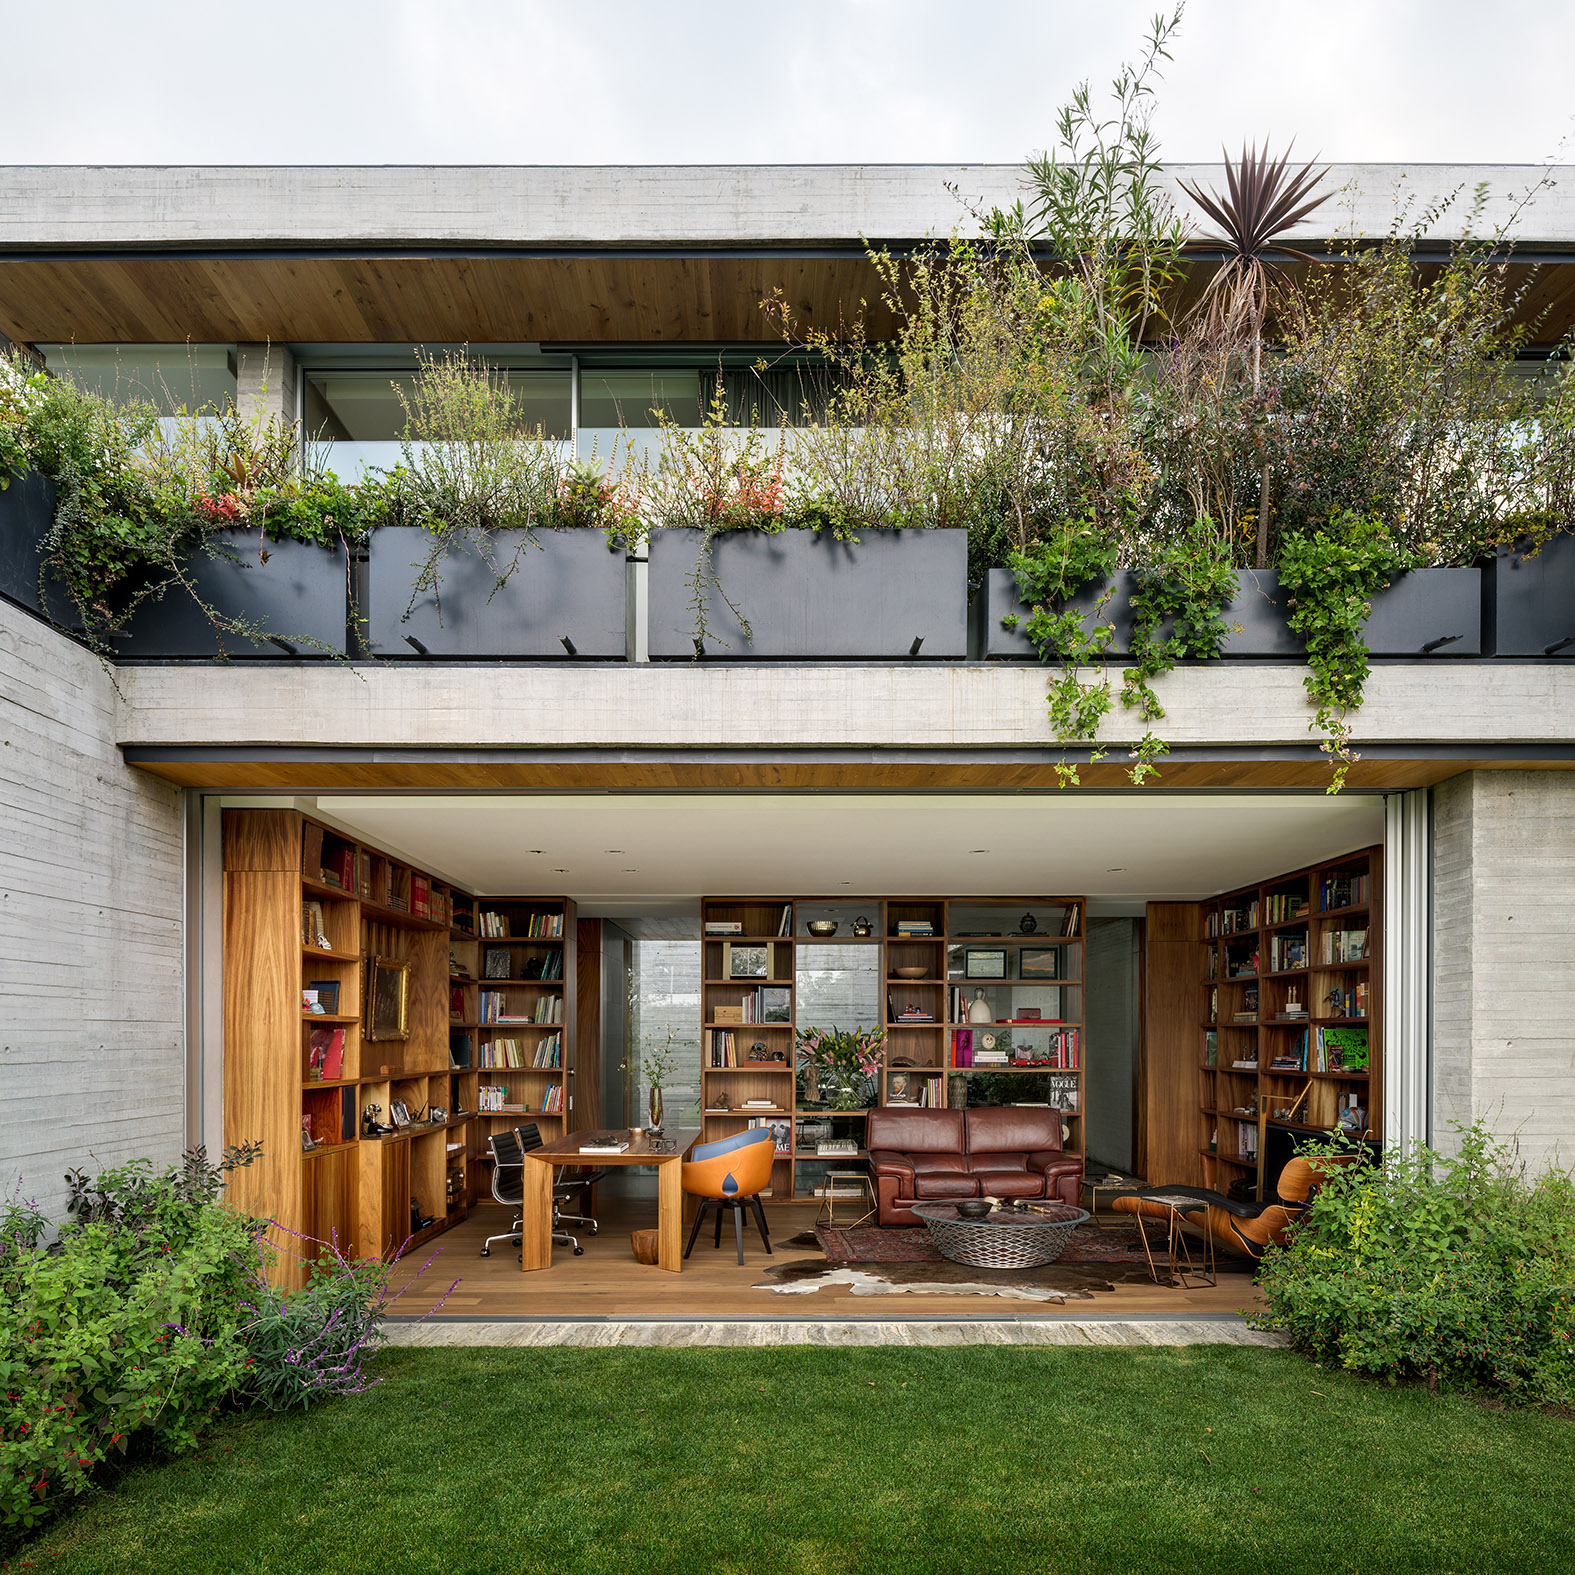 Contemporary Home with Garden Design: Most Beautiful Houses in the World